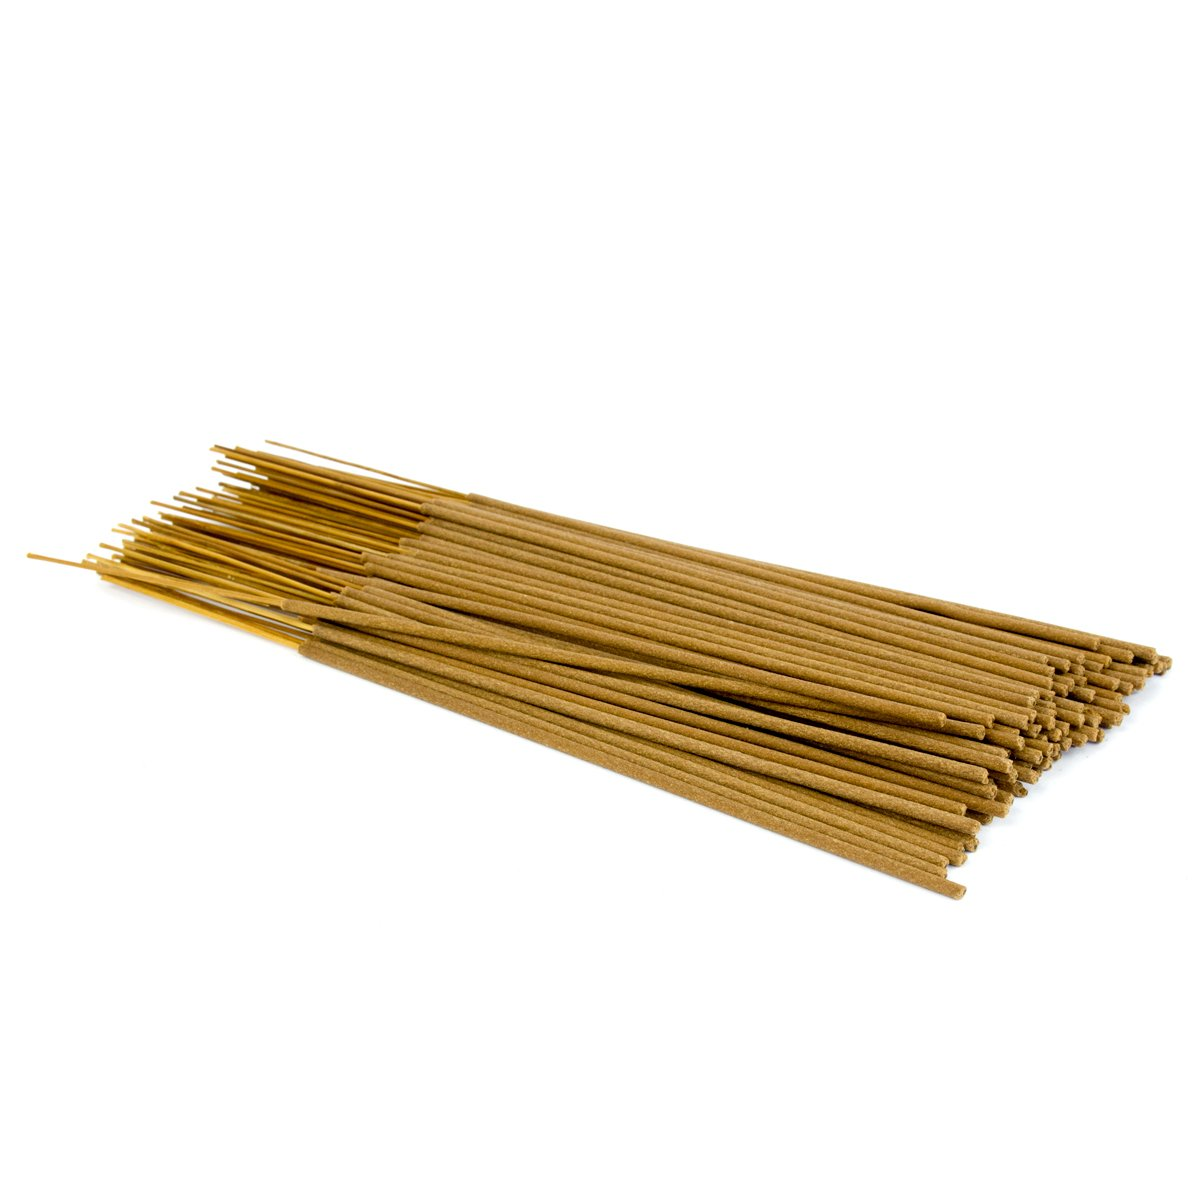 "Incense Sticks - 9"" - 100pc"